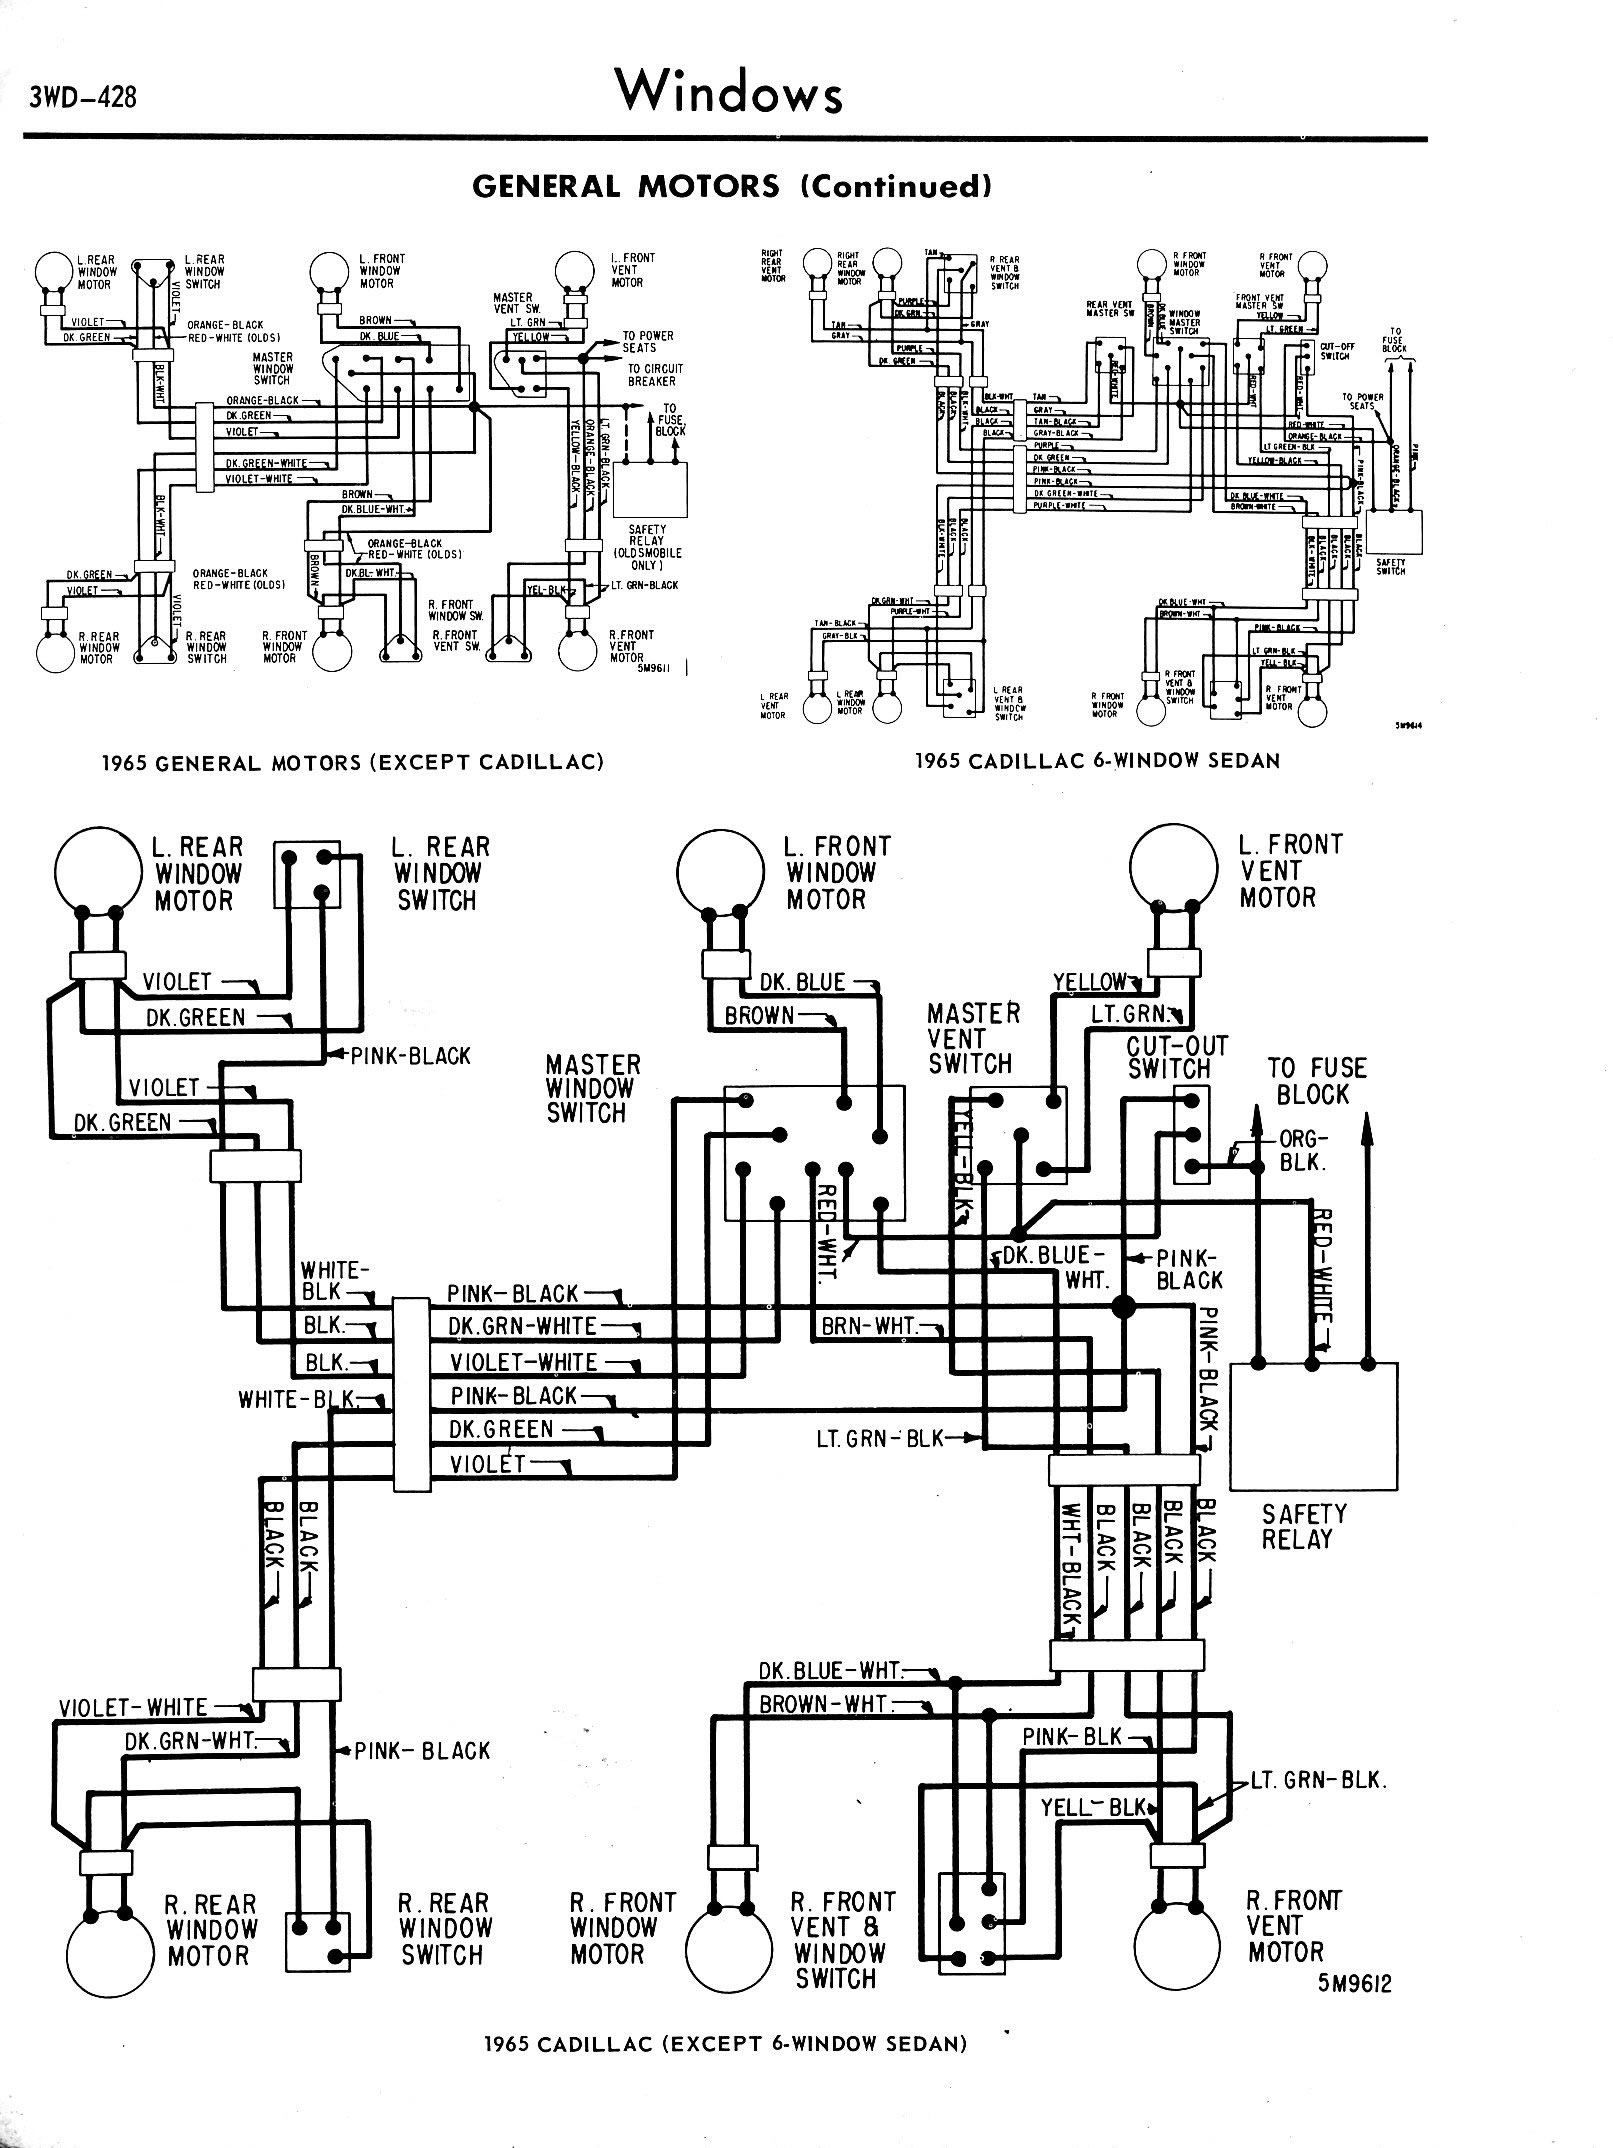 Chevy Diagrams 1970 Nova Wiring Diagram Power Windows 65 Gm Including The 6 Window Cadillac